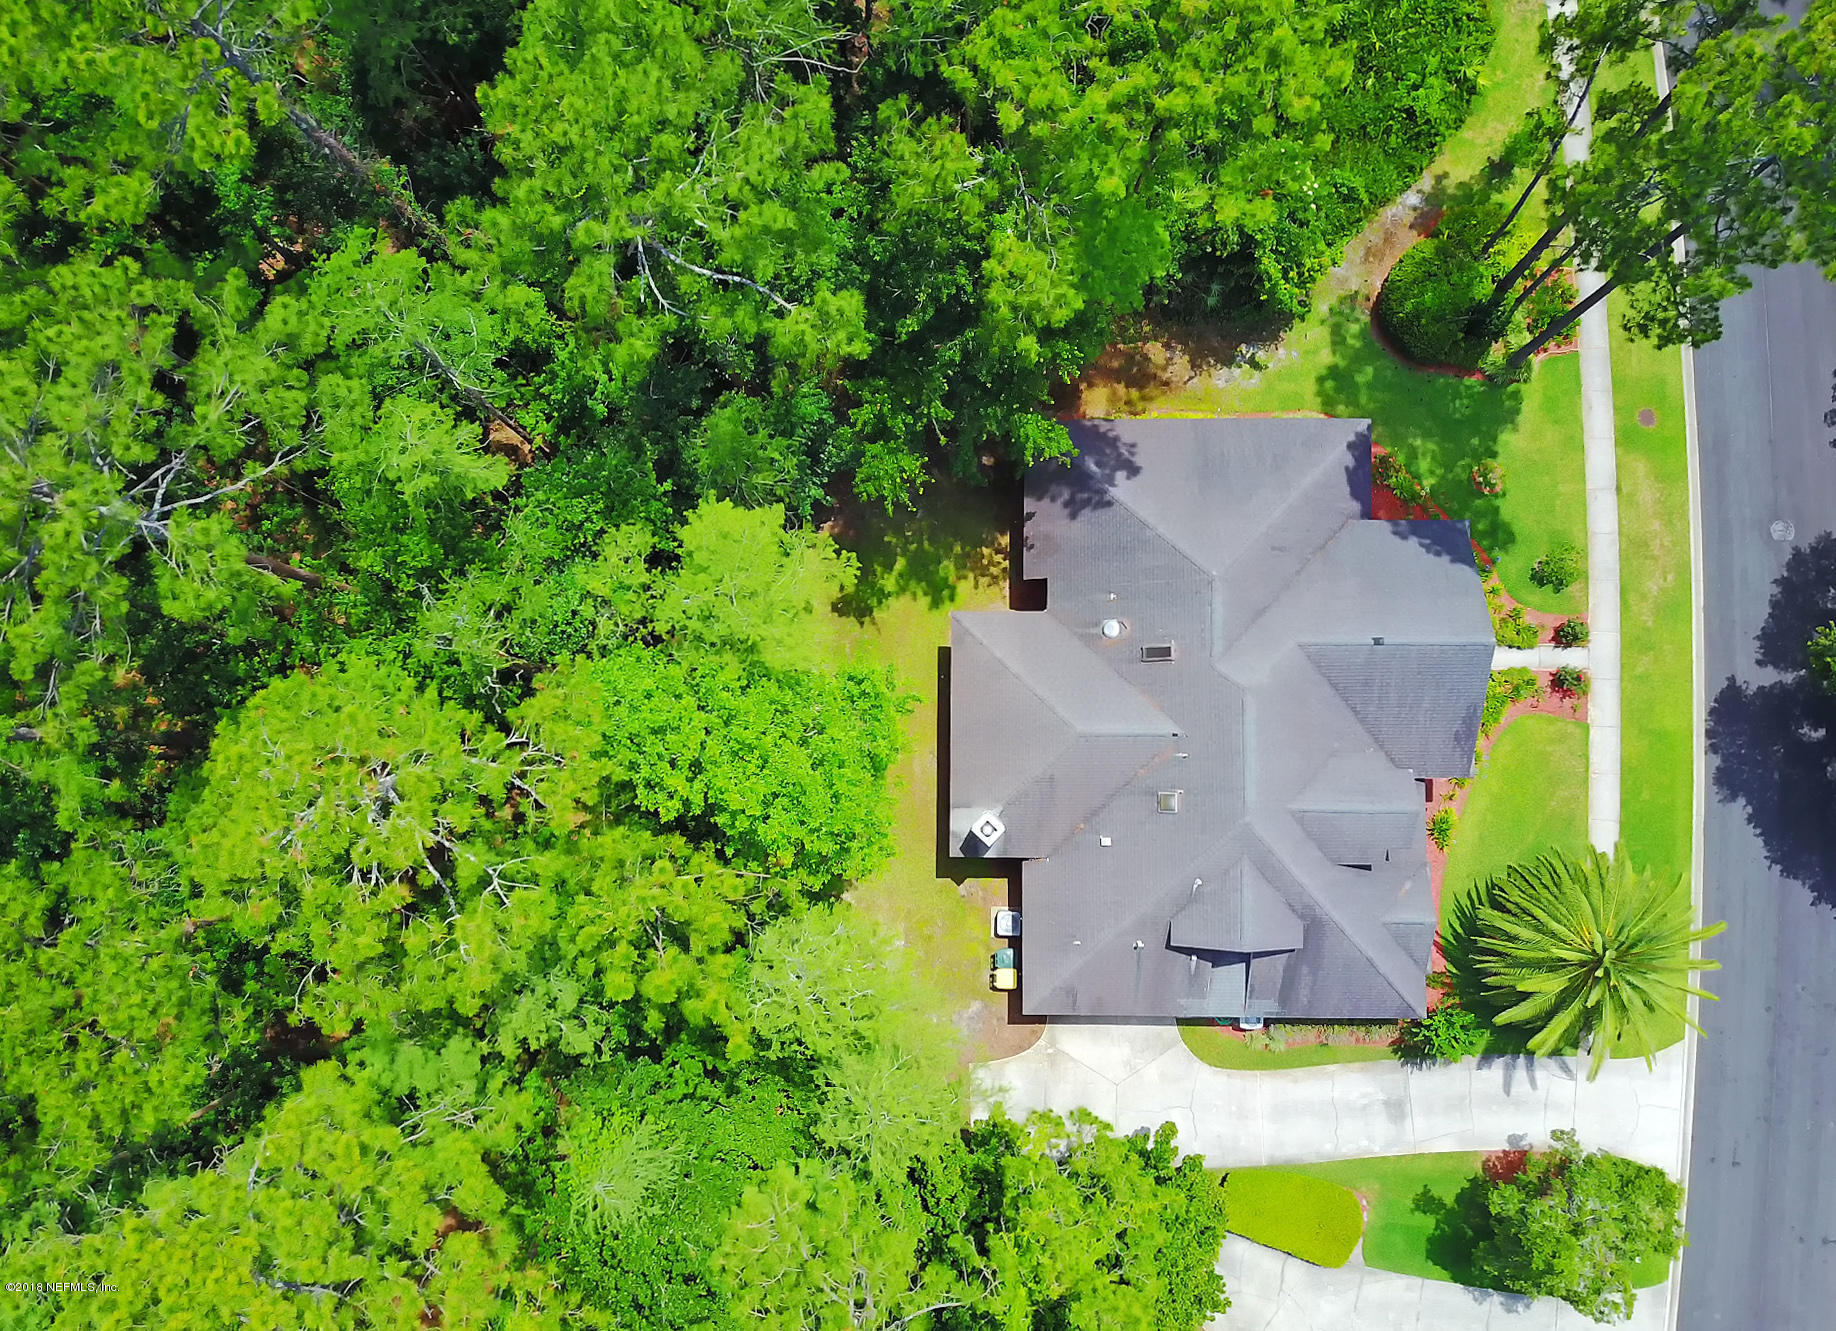 8721 AUTUMN GREEN, JACKSONVILLE, FLORIDA 32256, 5 Bedrooms Bedrooms, ,4 BathroomsBathrooms,Residential - single family,For sale,AUTUMN GREEN,953405